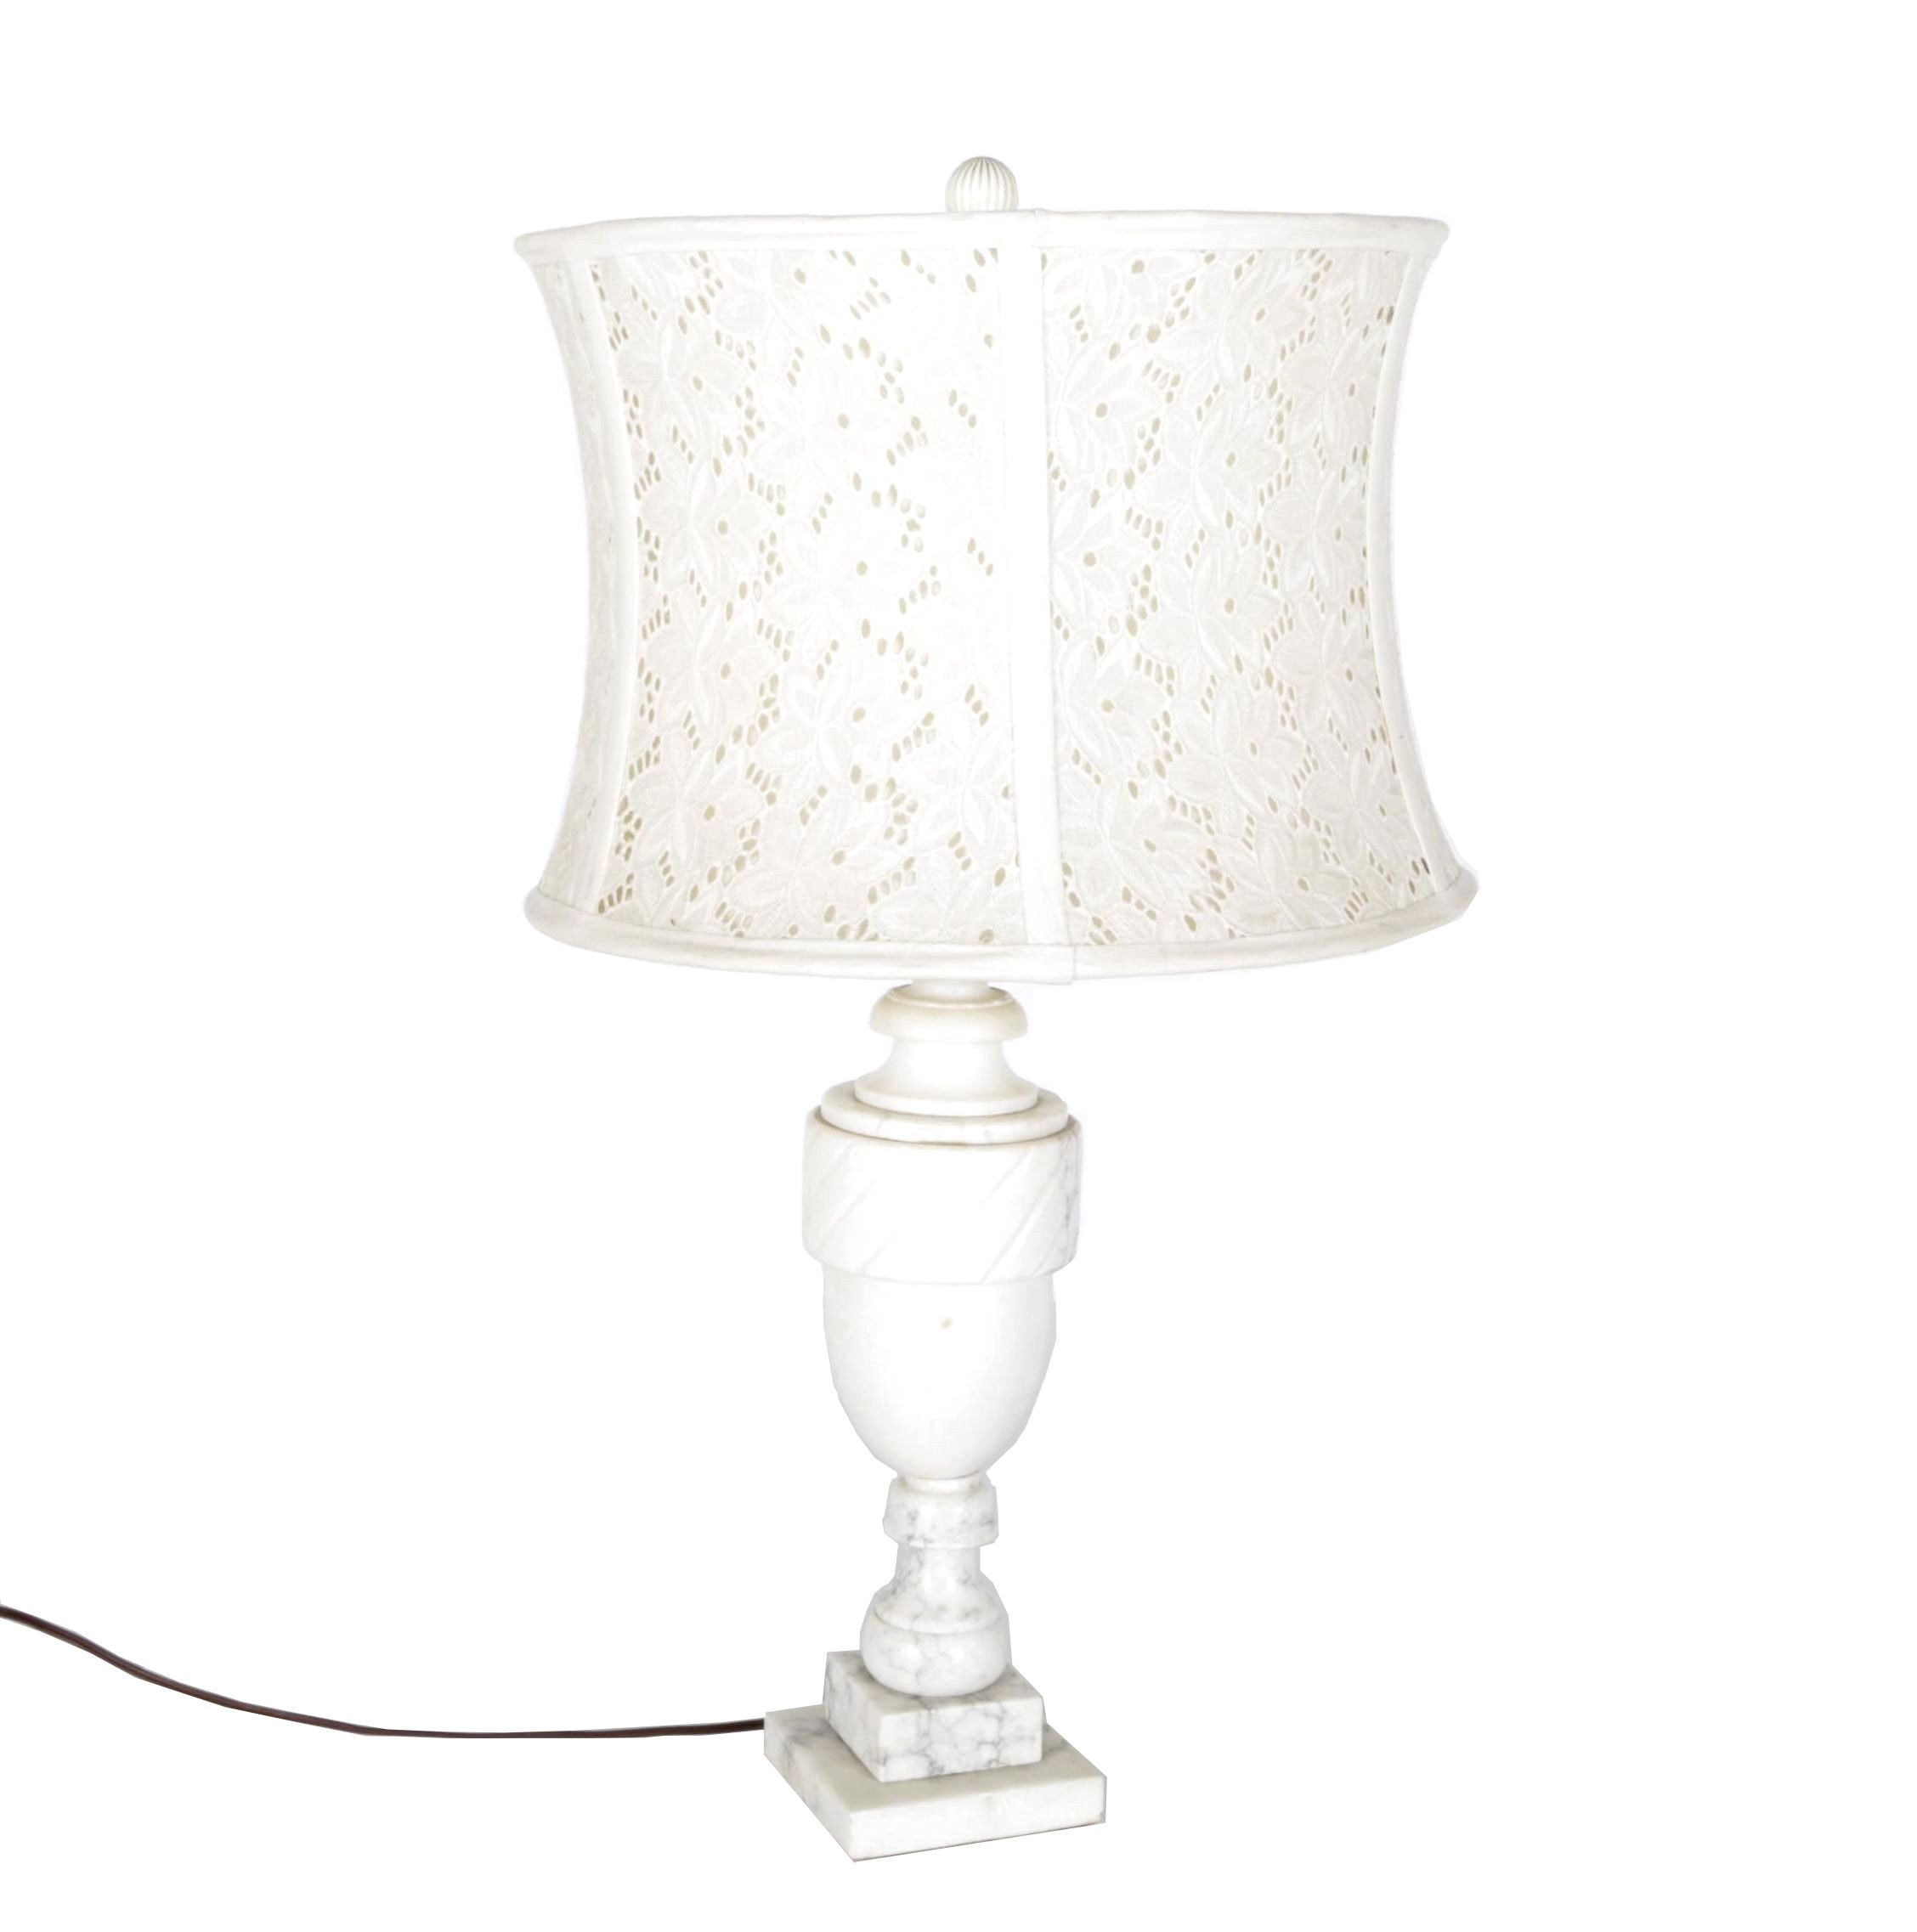 Vintage White Marble Table Lamp with Anthropologie Battenberg Lace Shade